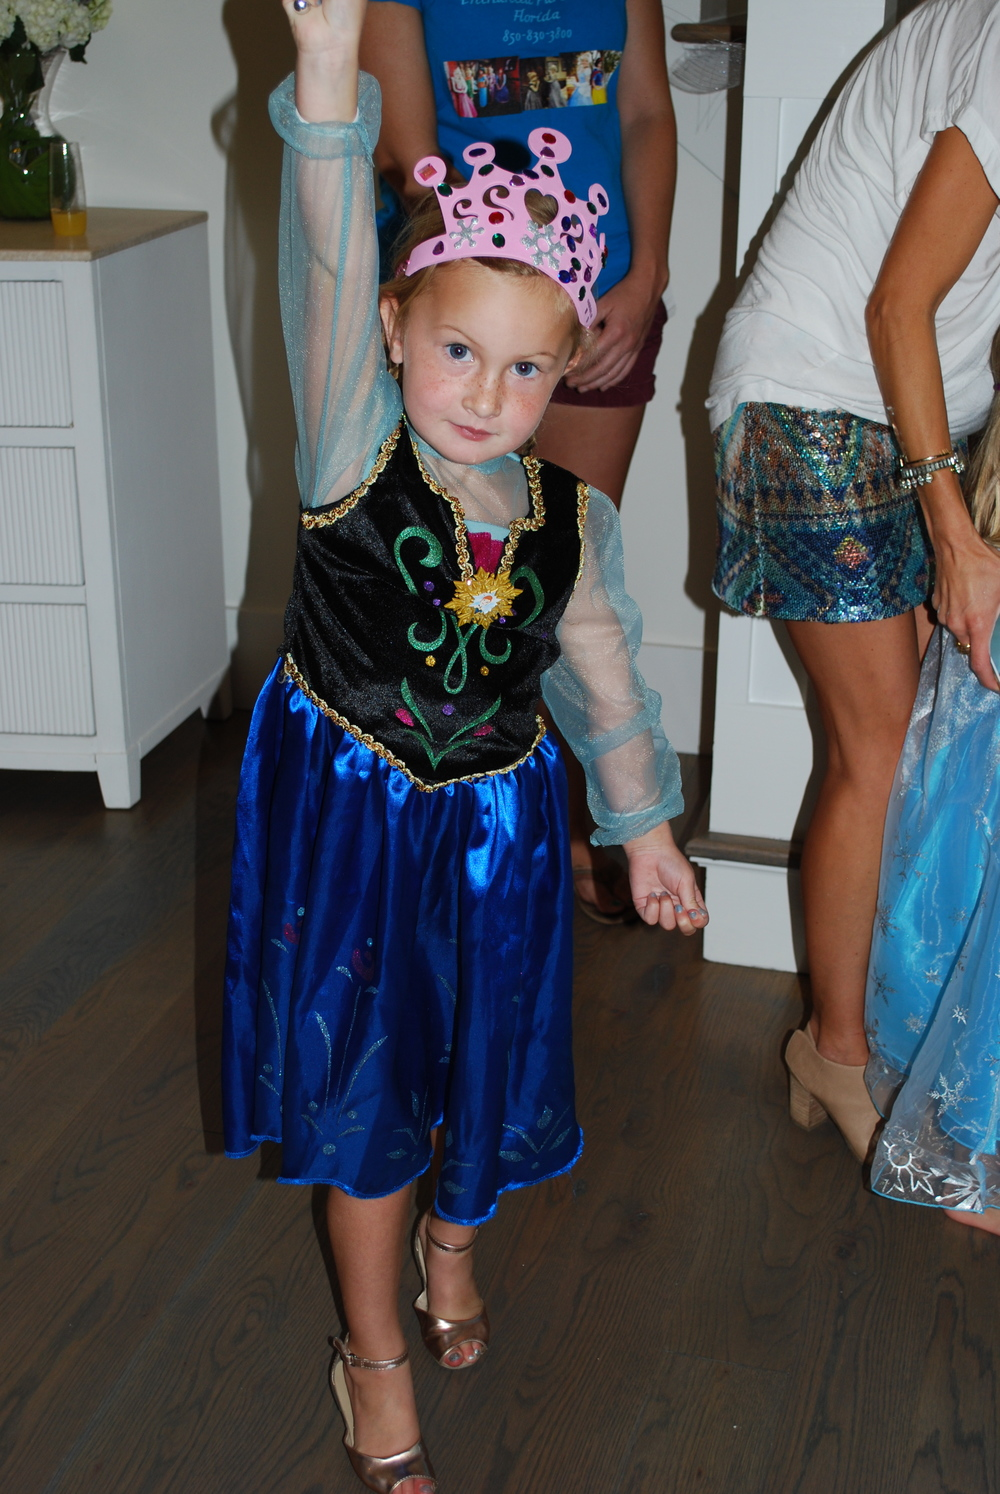 Emery had some serious magic powers :)  I want her shoes!!!